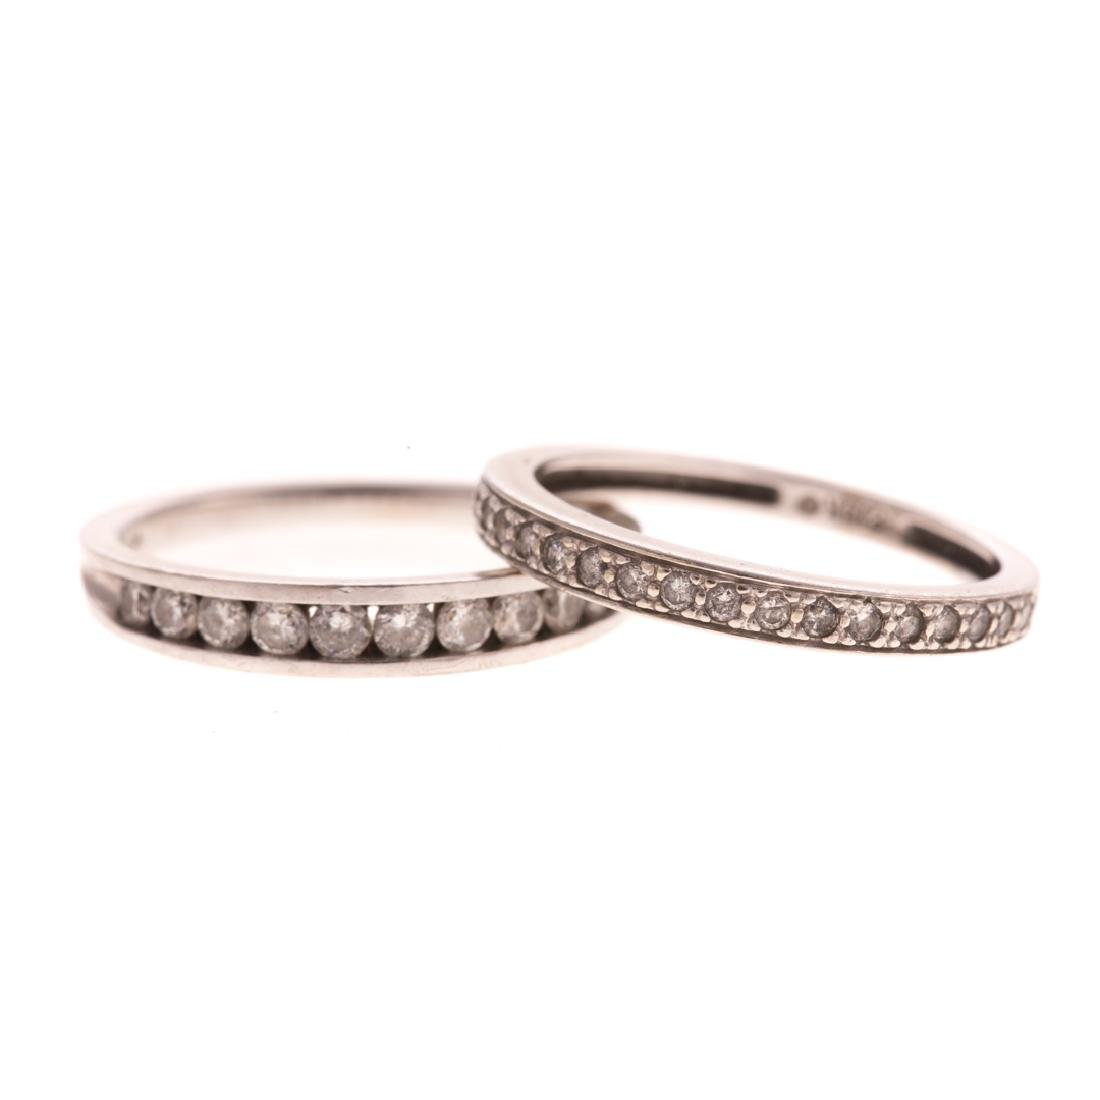 Two Lady's Diamond Wedding Bands in 14K Gold